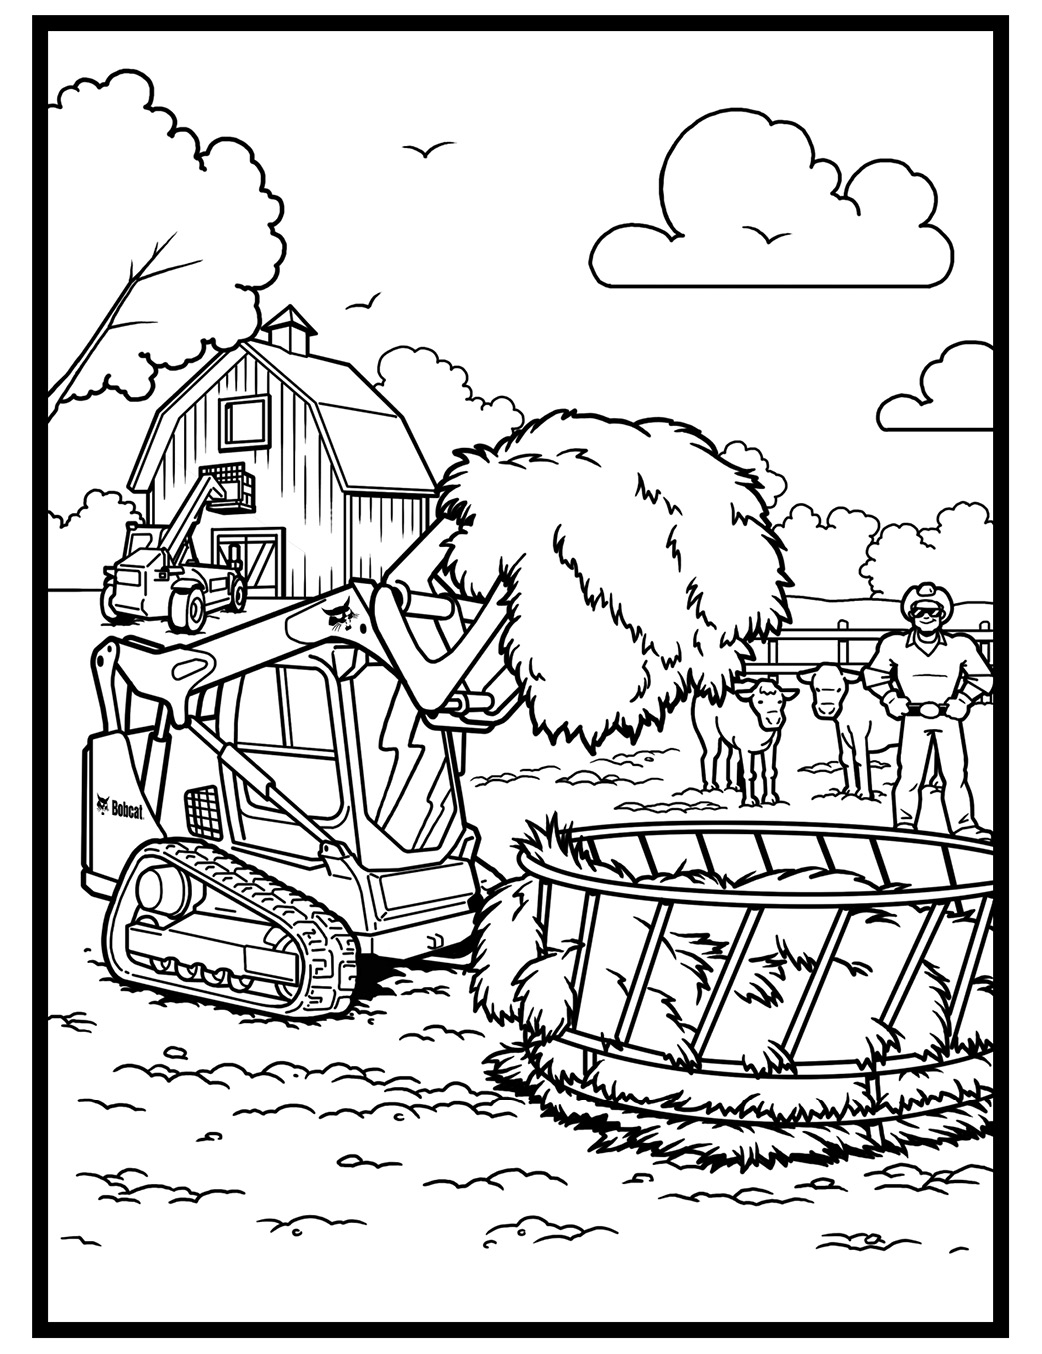 Printable Construction machines | Free Construction Coloring Pages ... | 1354x1042